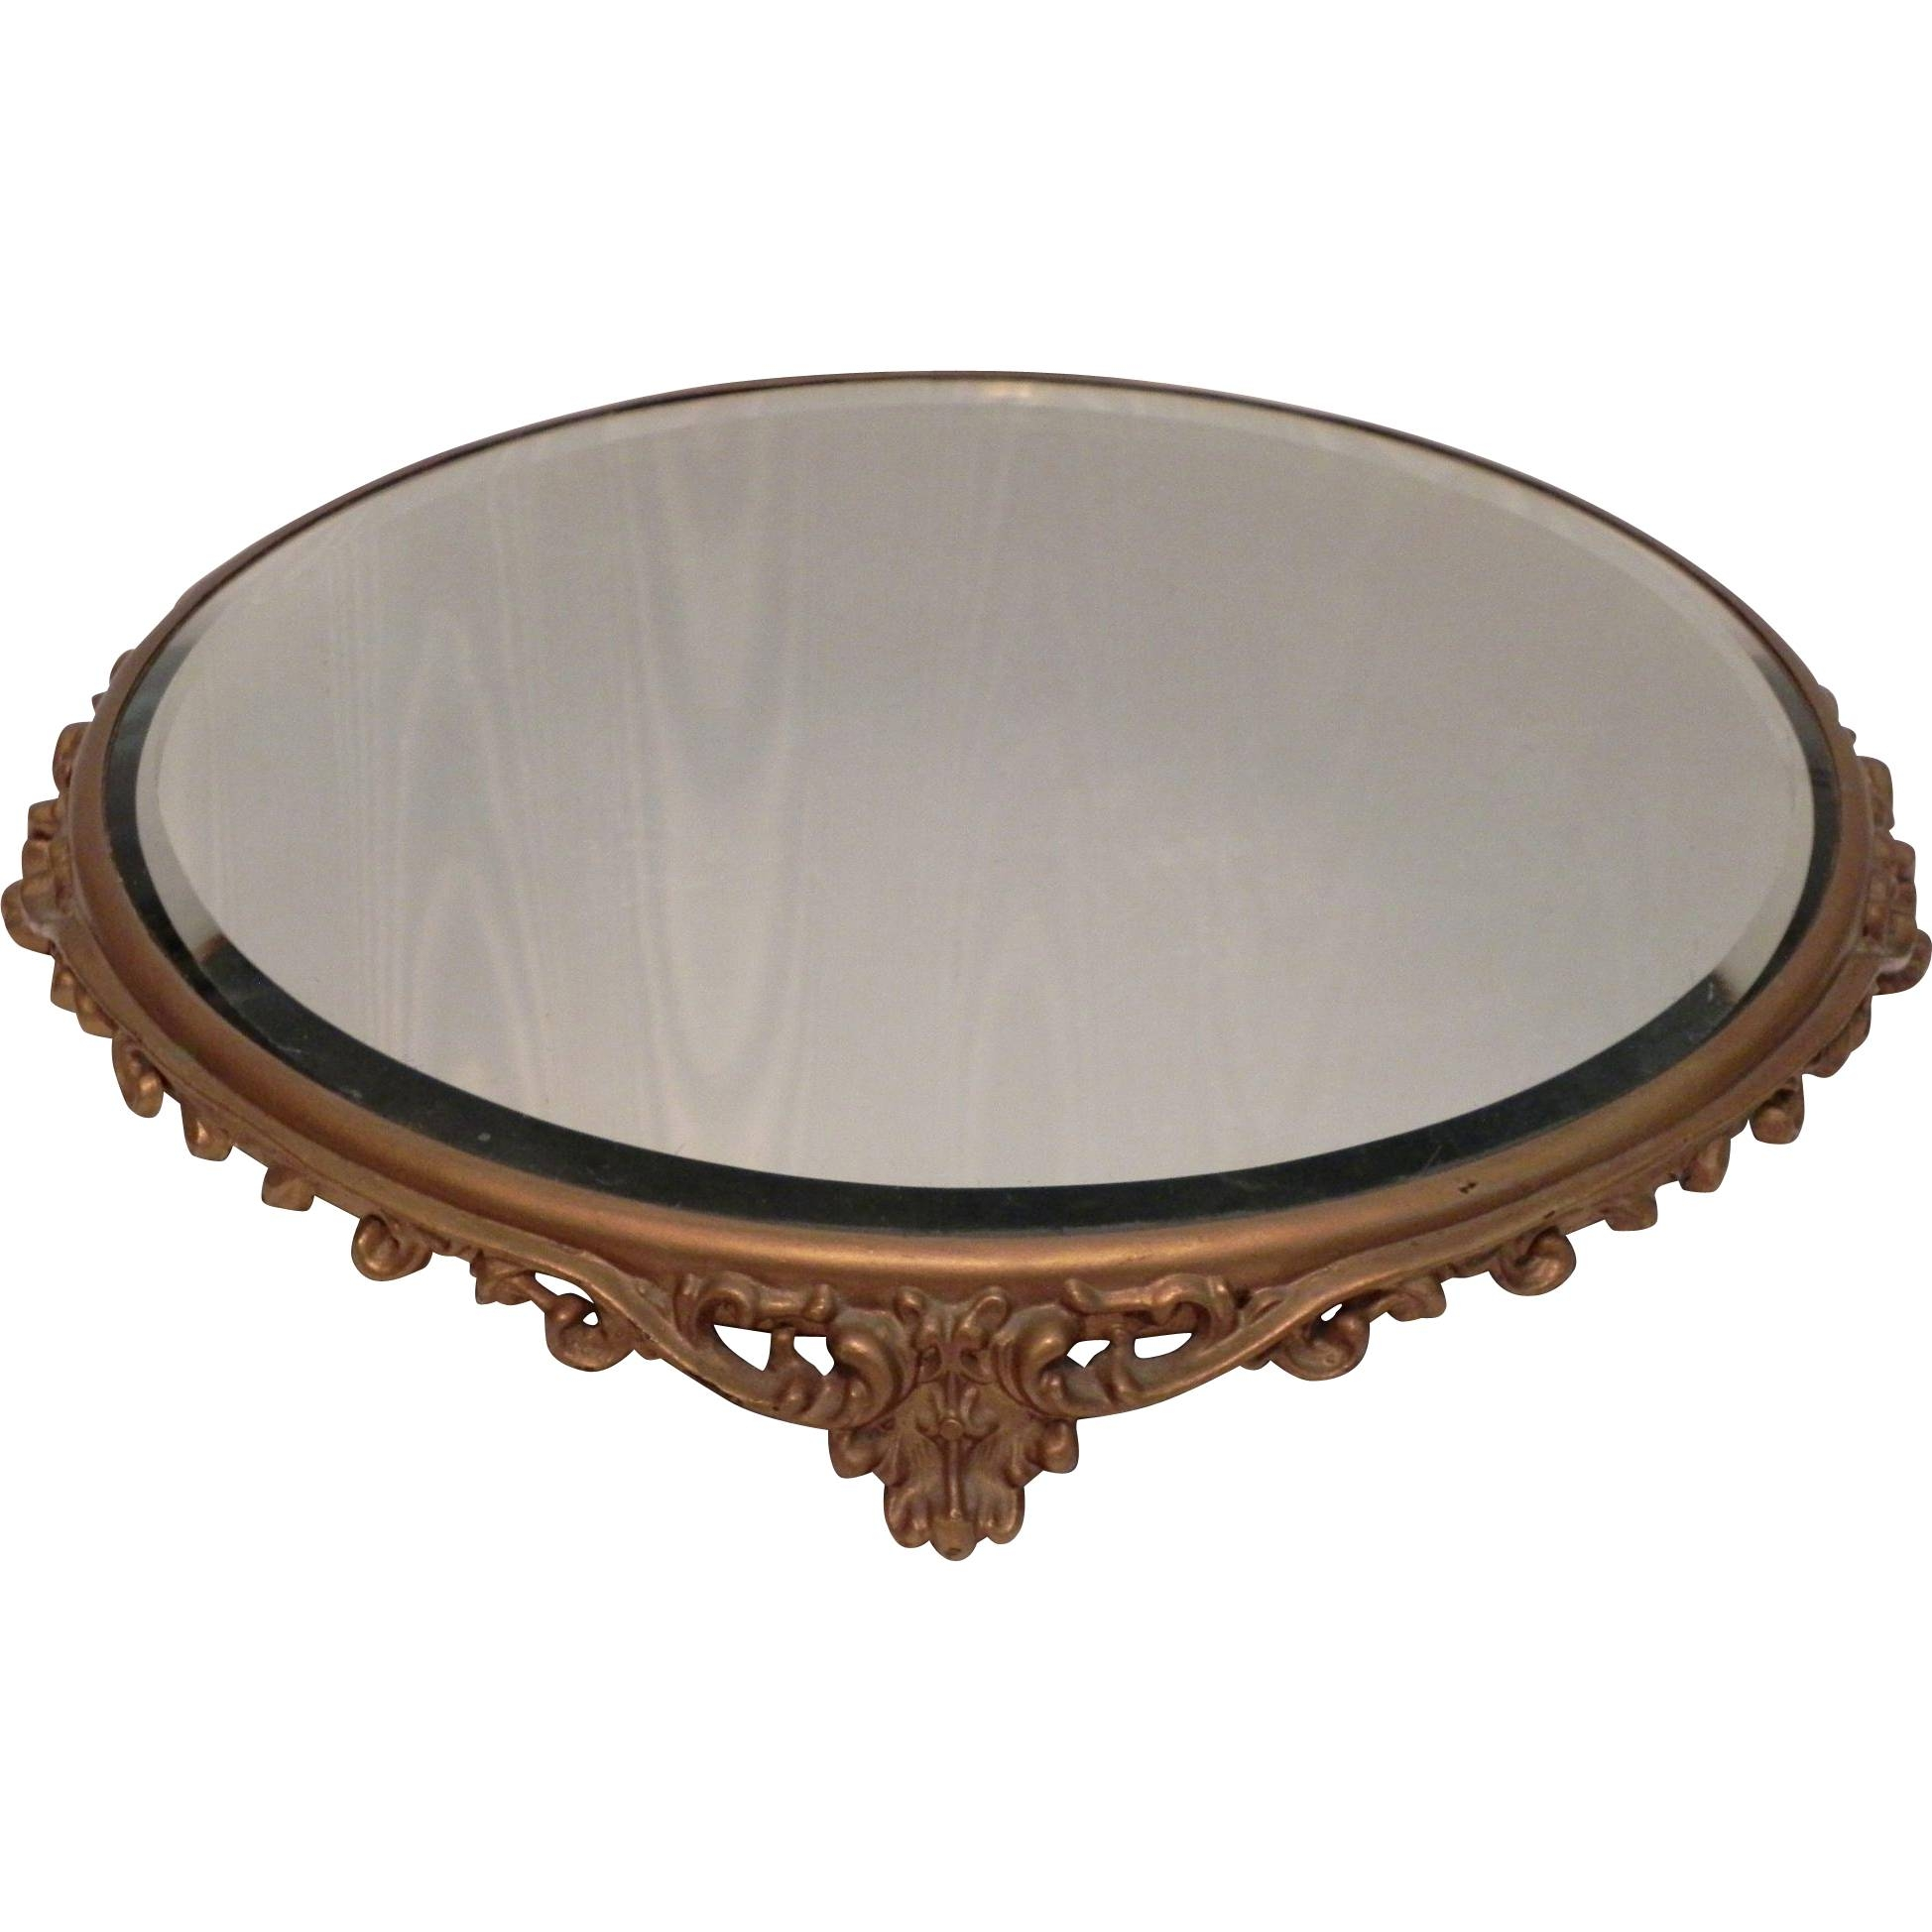 "Antique 12.5"" Round Plateau Tabletop Beveled Mirror Cake Plate with Round Bevelled Mirrors (Image 2 of 25)"